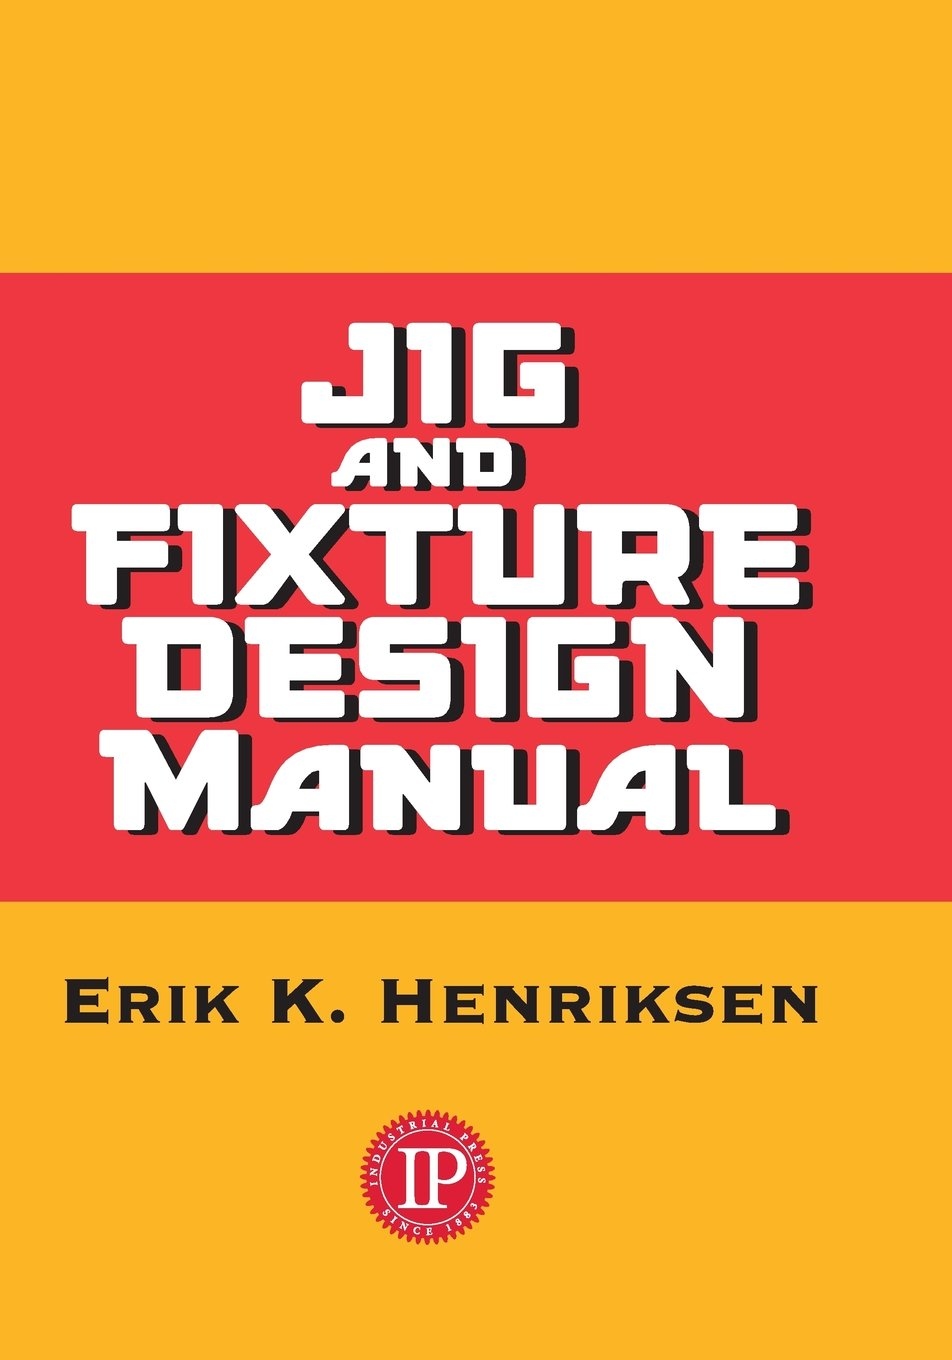 Buy Jig and Fixture Design Manual Book Online at Low Prices in India | Jig  and Fixture Design Manual Reviews & Ratings - Amazon.in